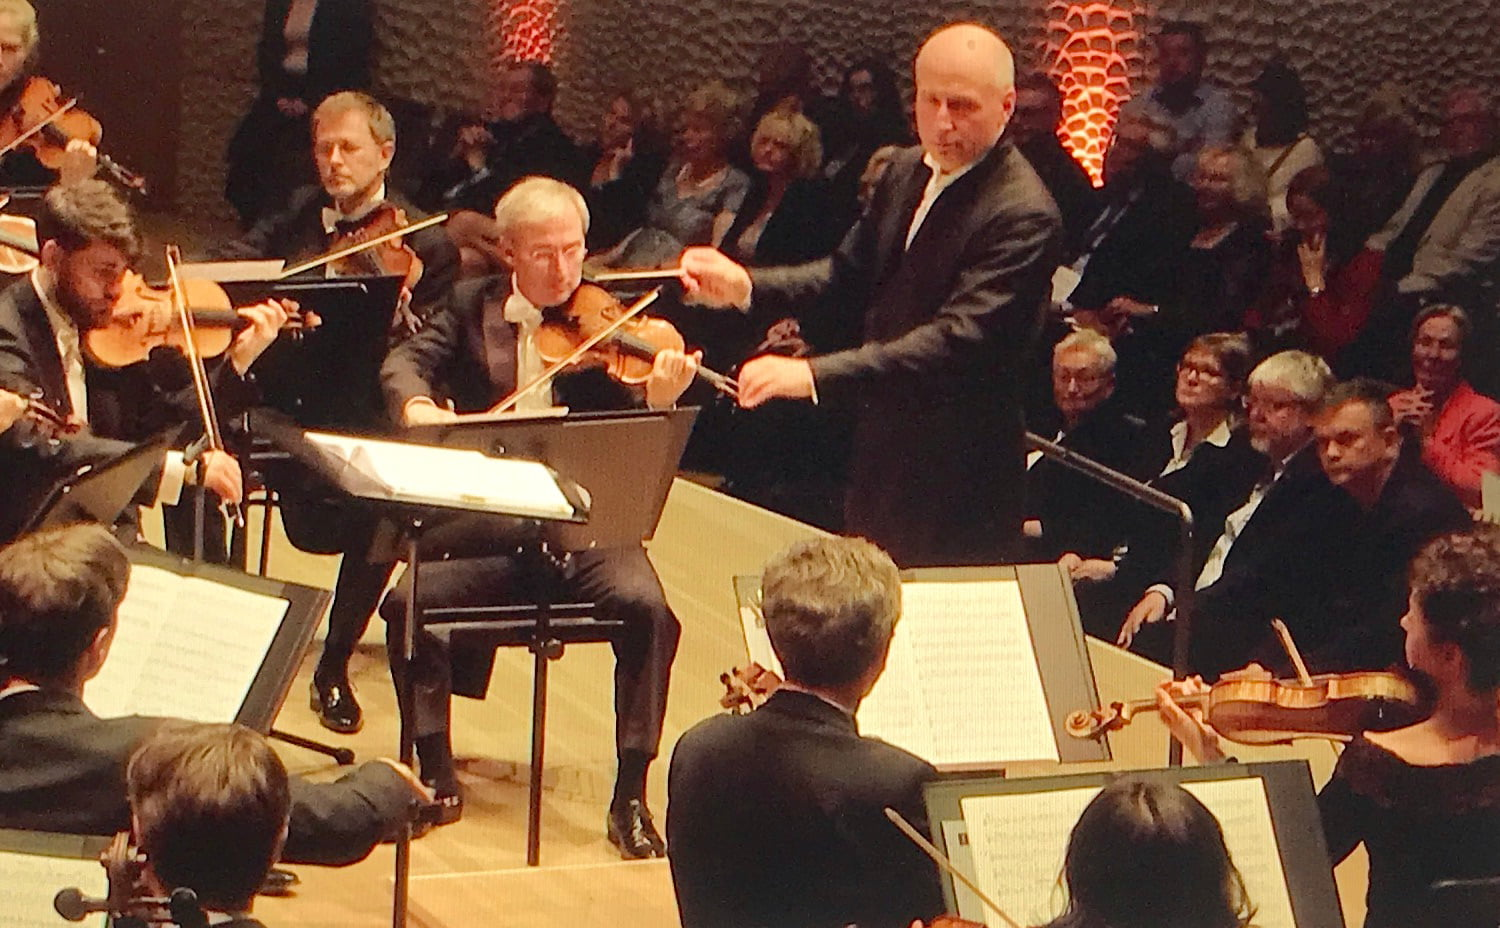 Paavo Järvi conducts NDR Elbphilharmonie Orchester in Großer Saal  at Elbphilharmonie, HamburgPhotograph: Screenshot of the webcast